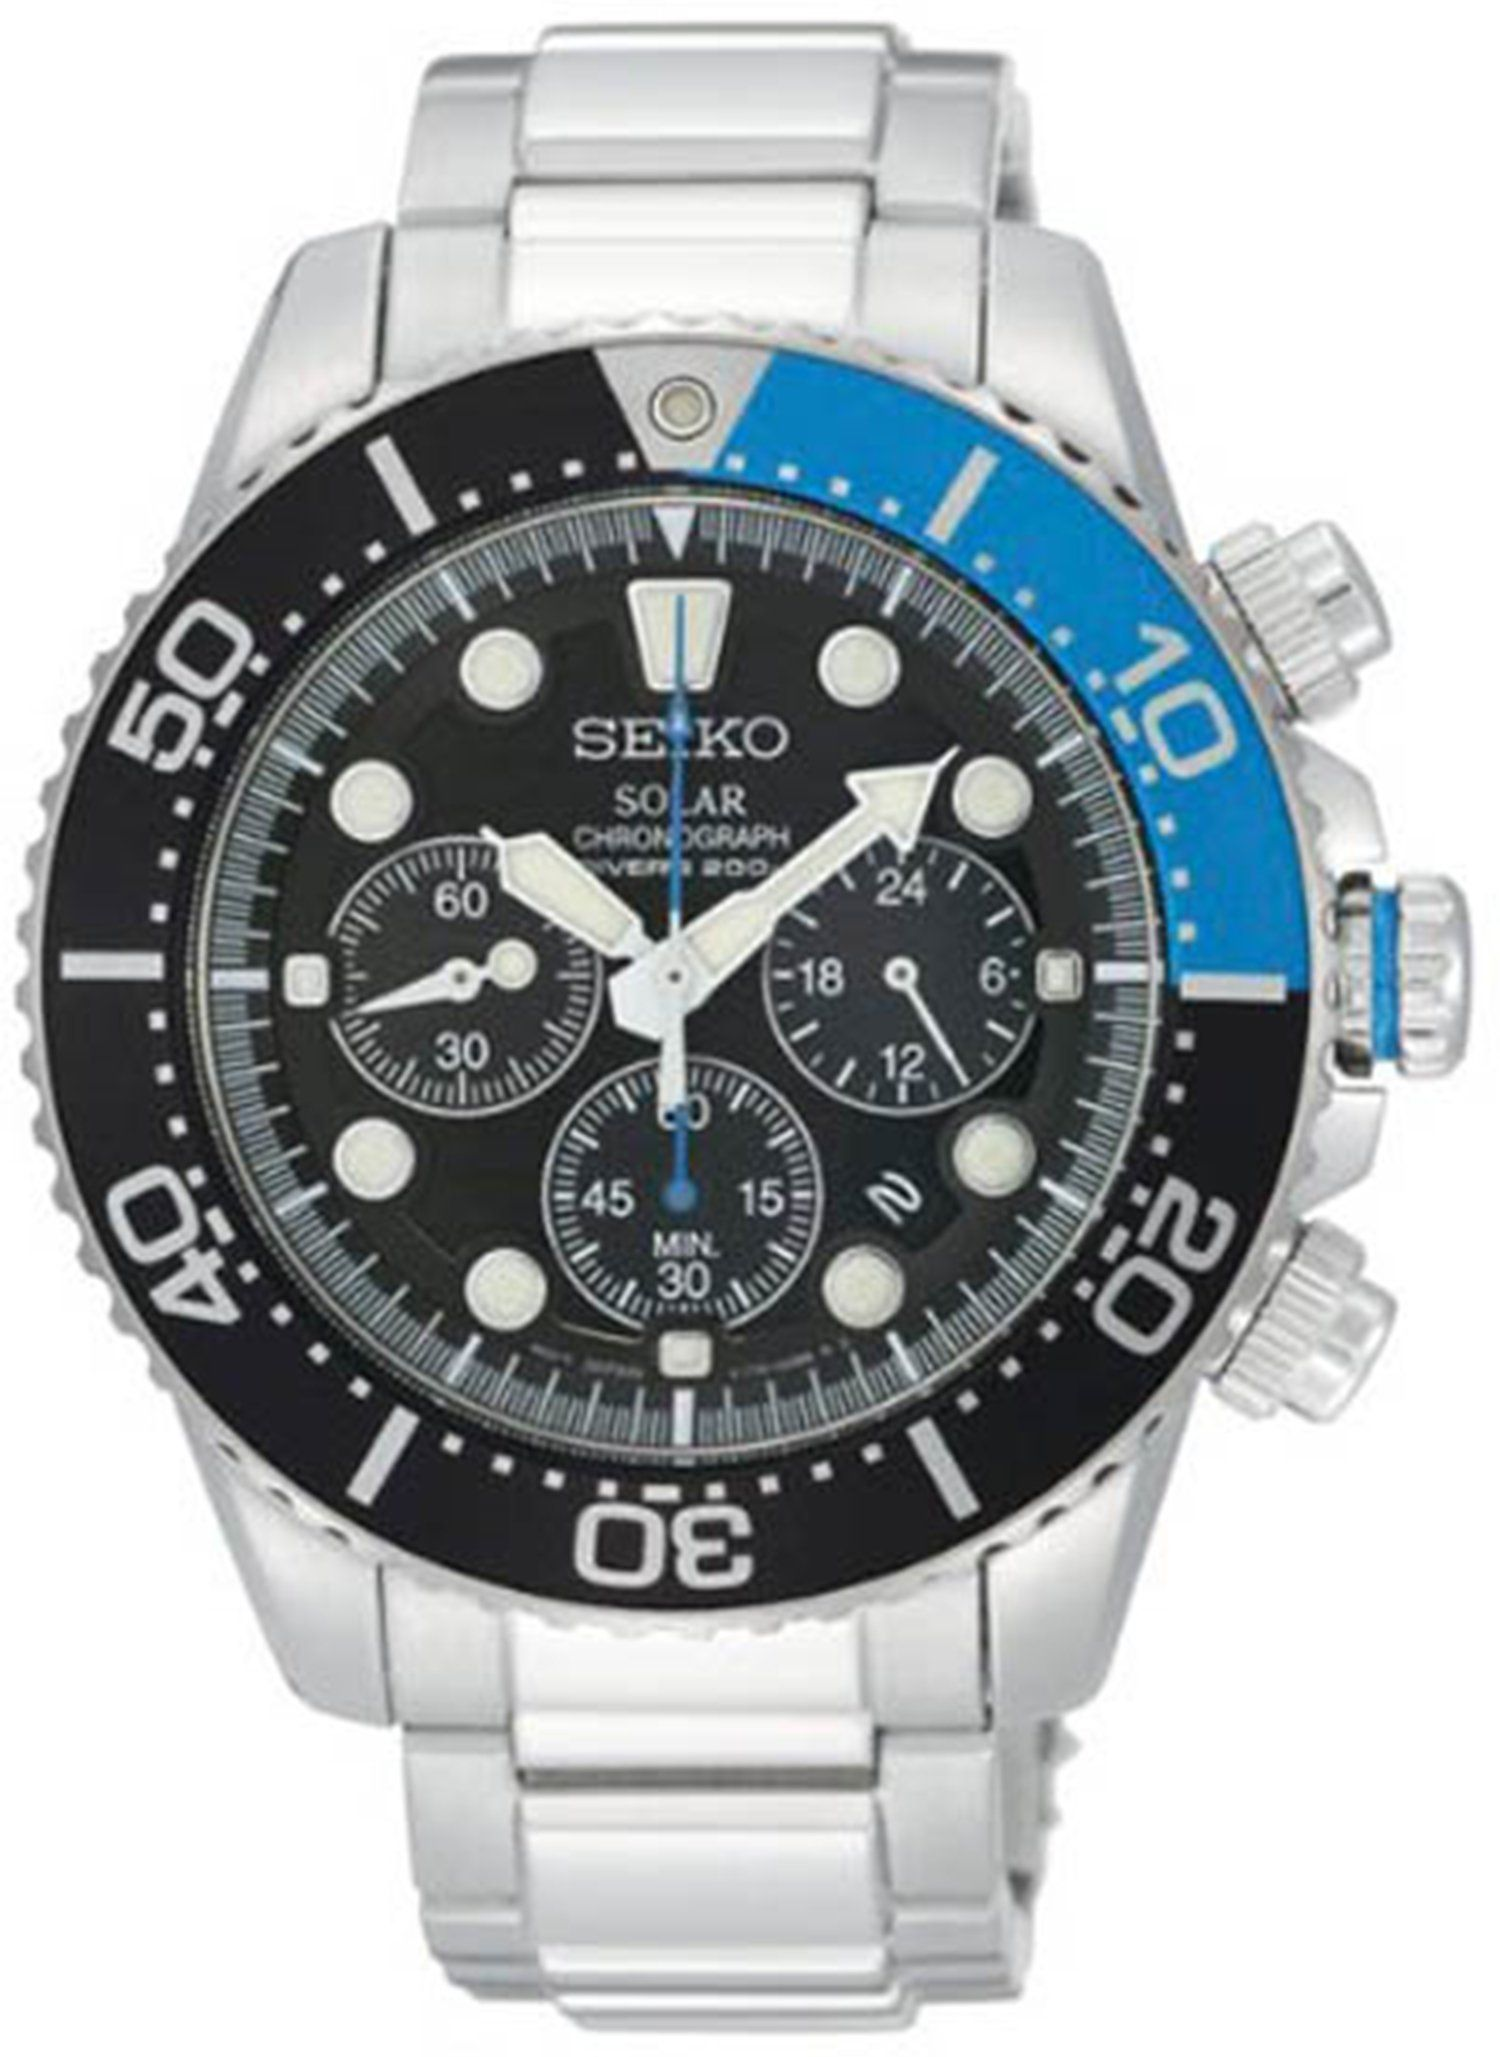 Gents Mens Seiko Sports Watch Stainless Steel Amp Black Dial